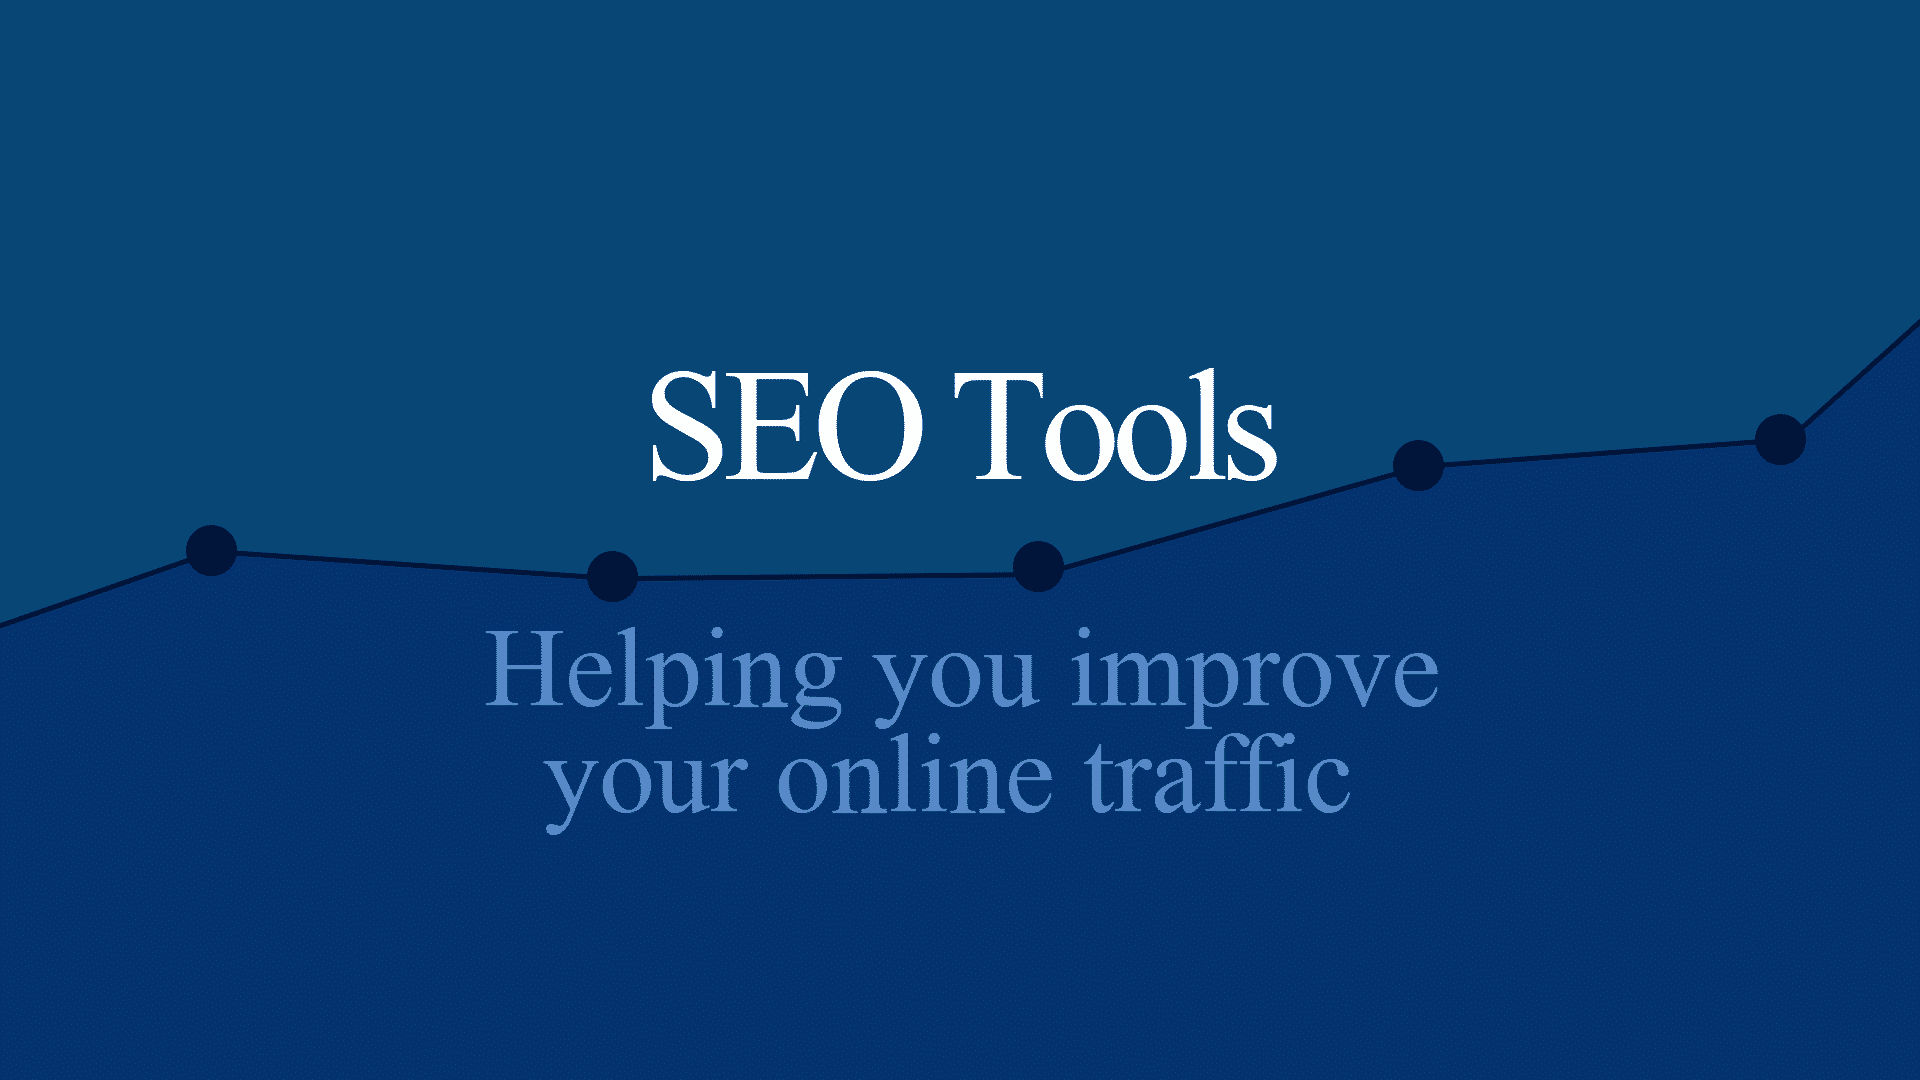 4 Tools Everyone In The Seo Industry Should Be Using